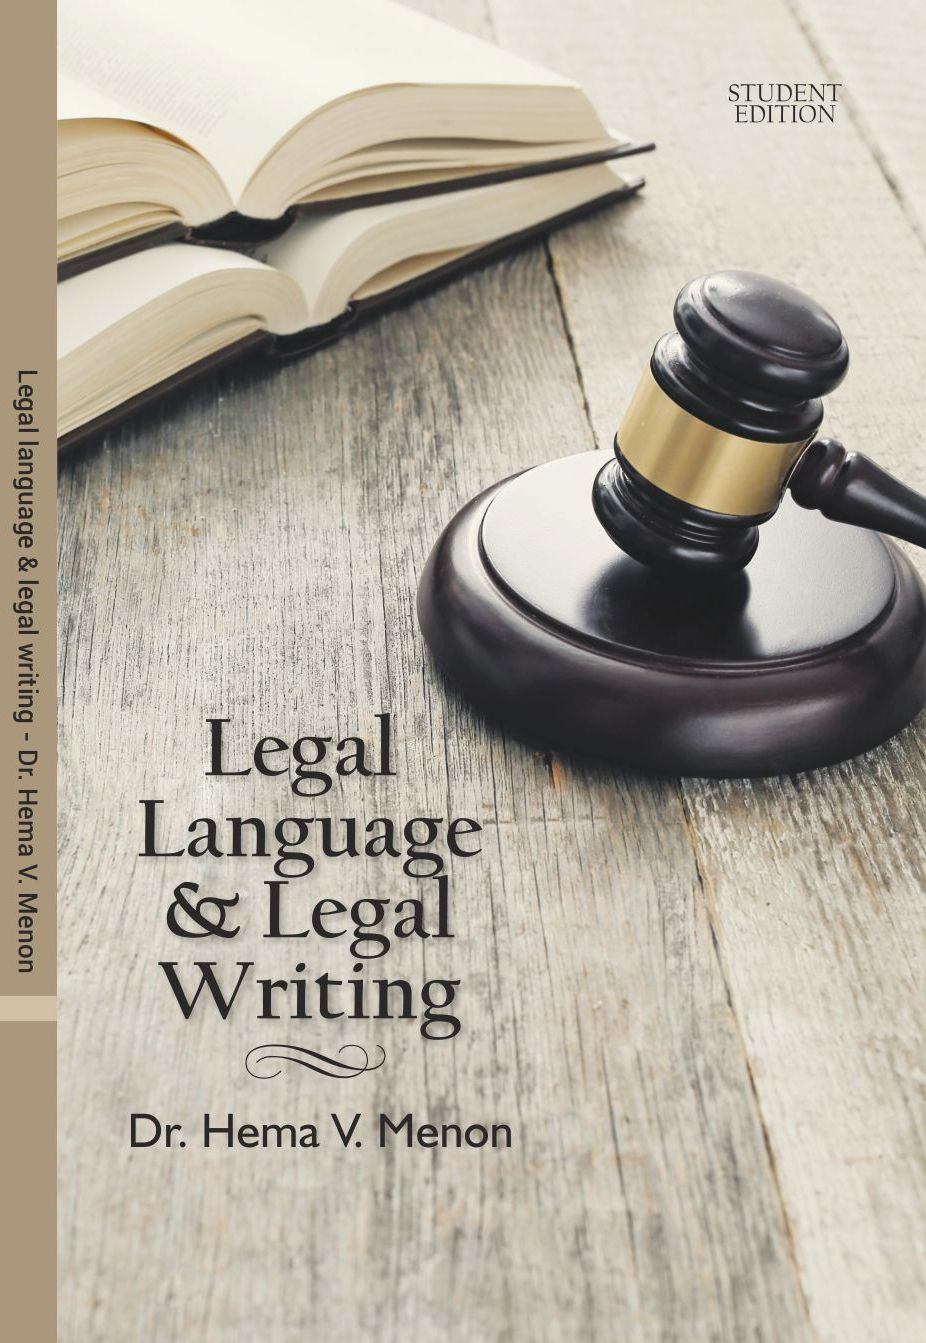 'Legal Language and Legal Writing' by Dr. Hema Menon